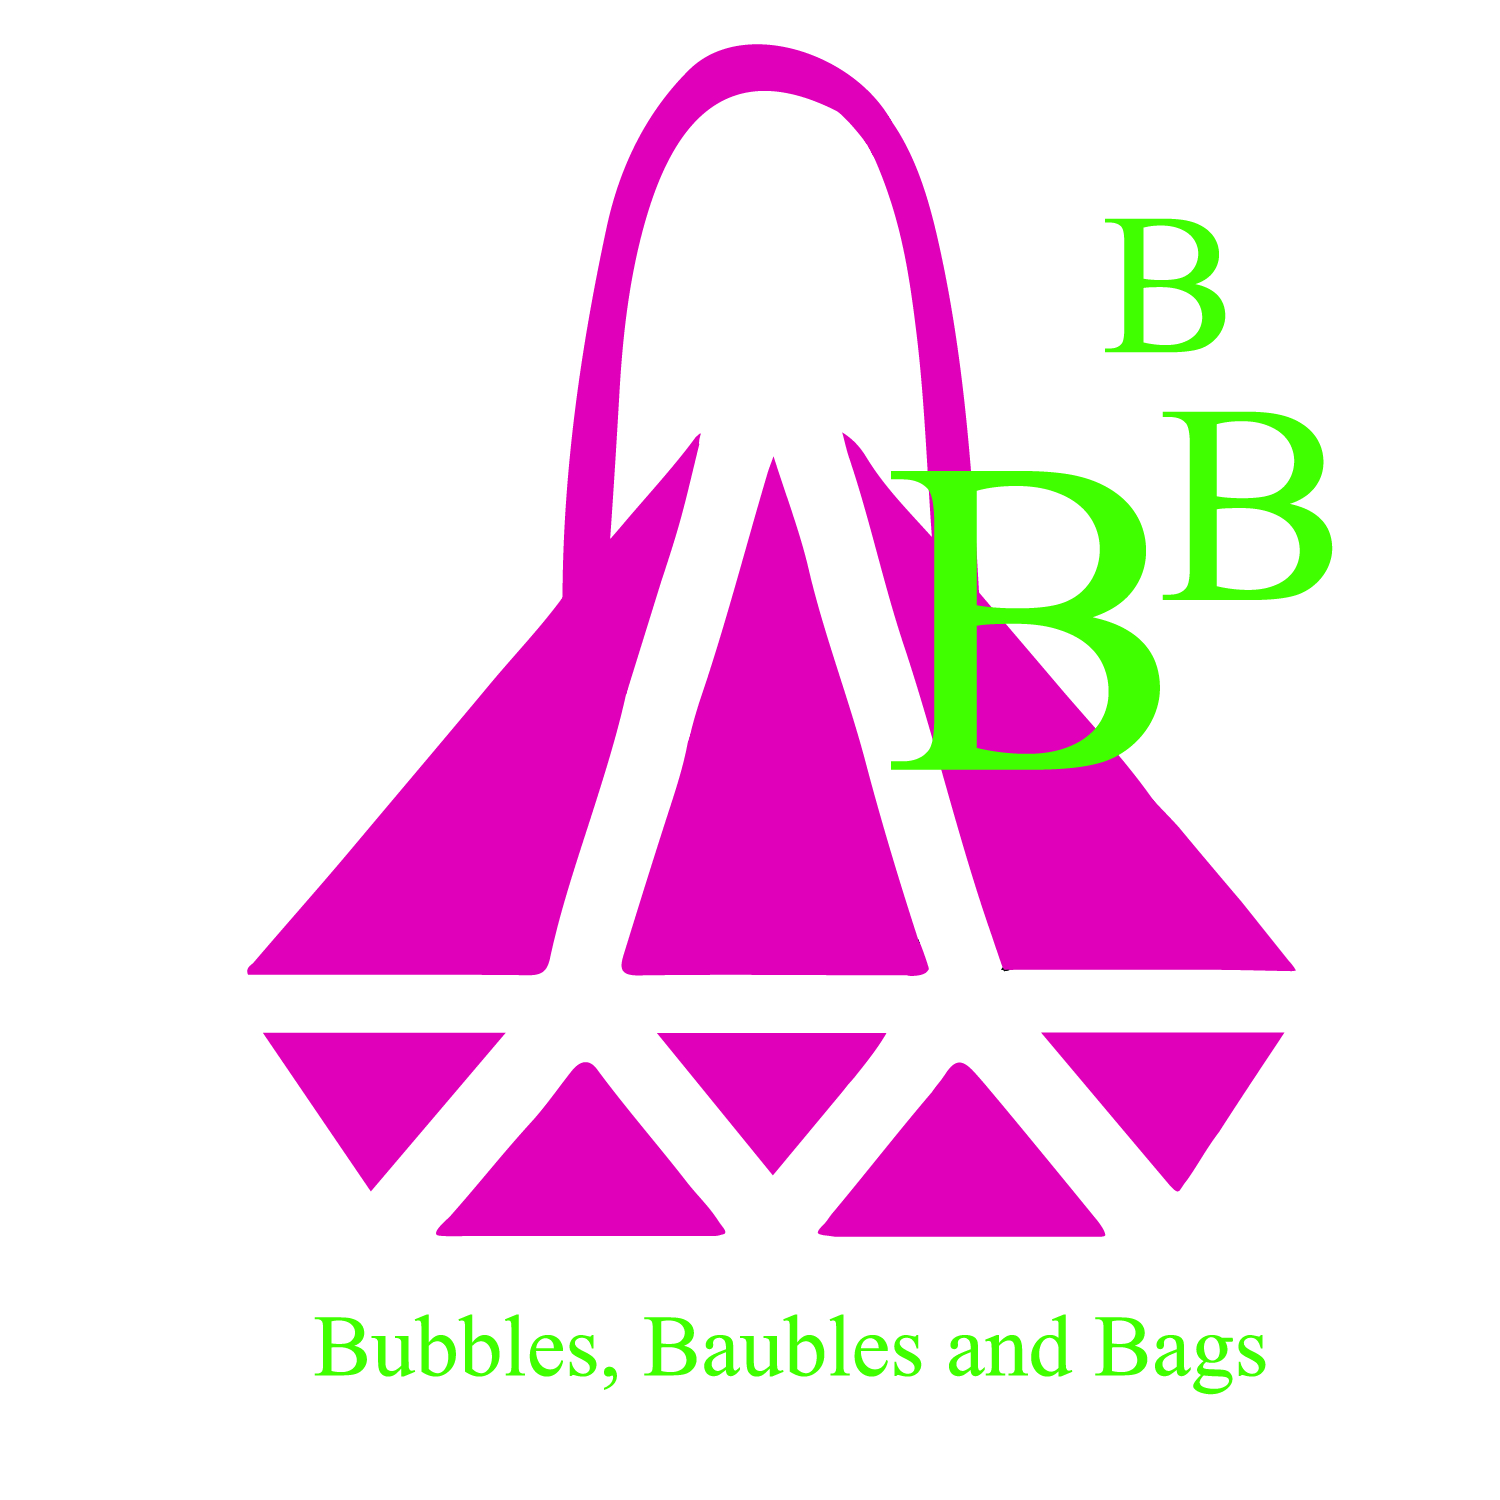 Bubbles, Baubles and Bags Logo